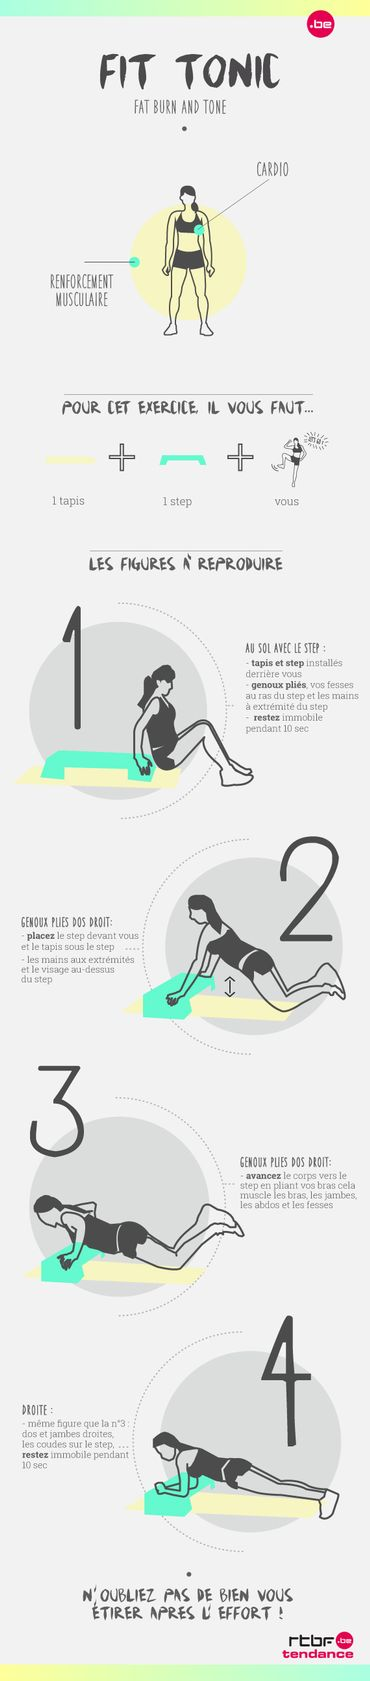 Fit Tonic : 4 exercices pour muscler vos bras